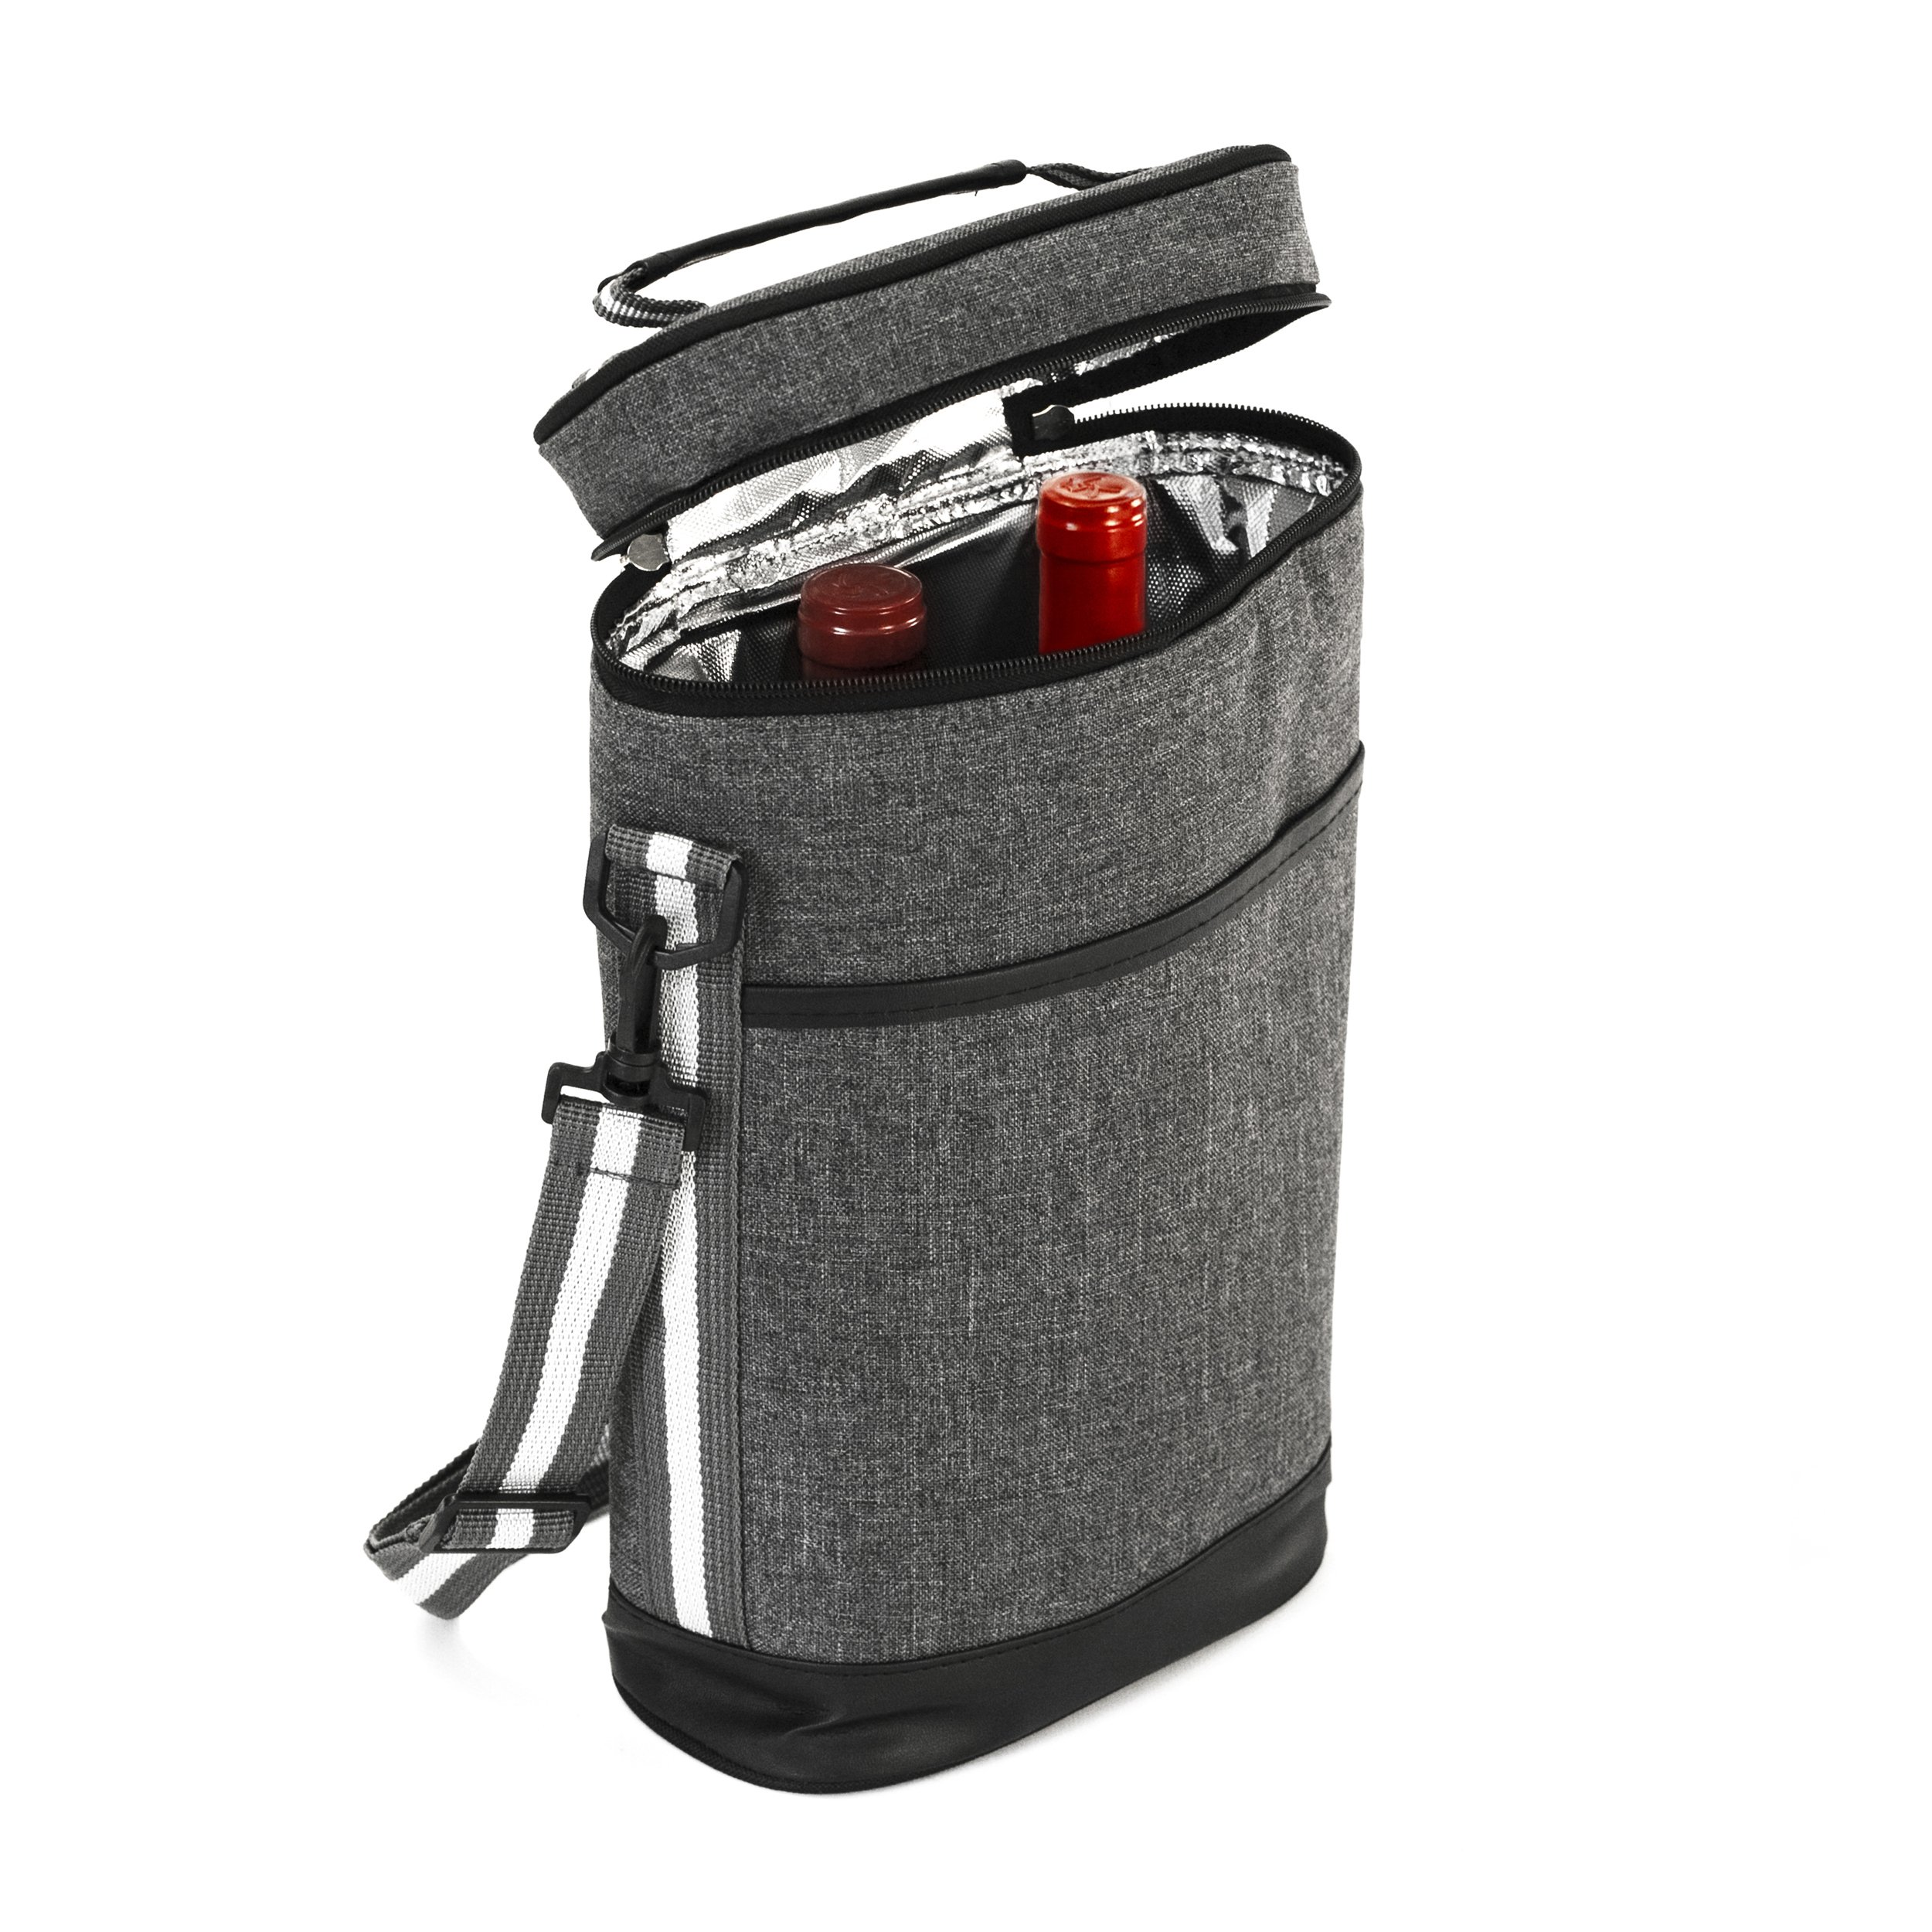 6475e3417 2 Wine Tote Carrier - Insulated Portable Picnic Cooler Bag for 2 with Shoulder  Straps and Outside Pocket in Gray –Wine Travel Bag Perfect for Picnic  Camping ...